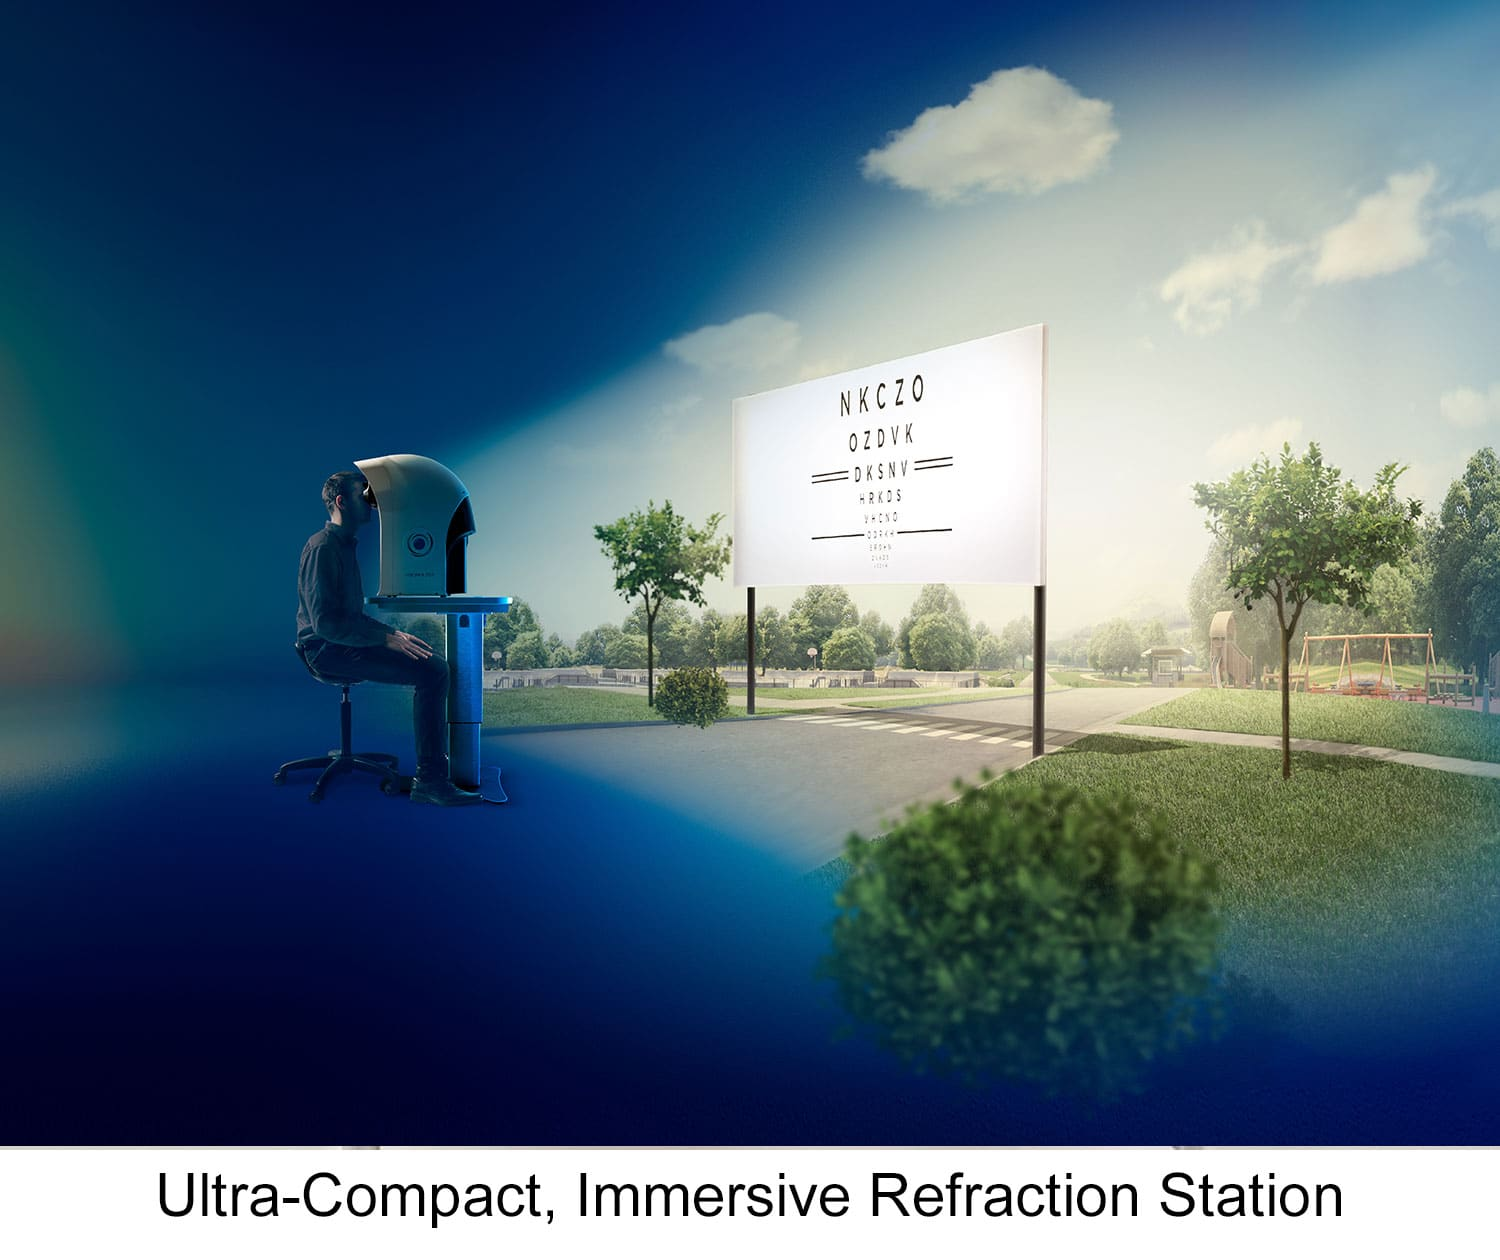 Ultra-Compact, Immersive Refraction Station